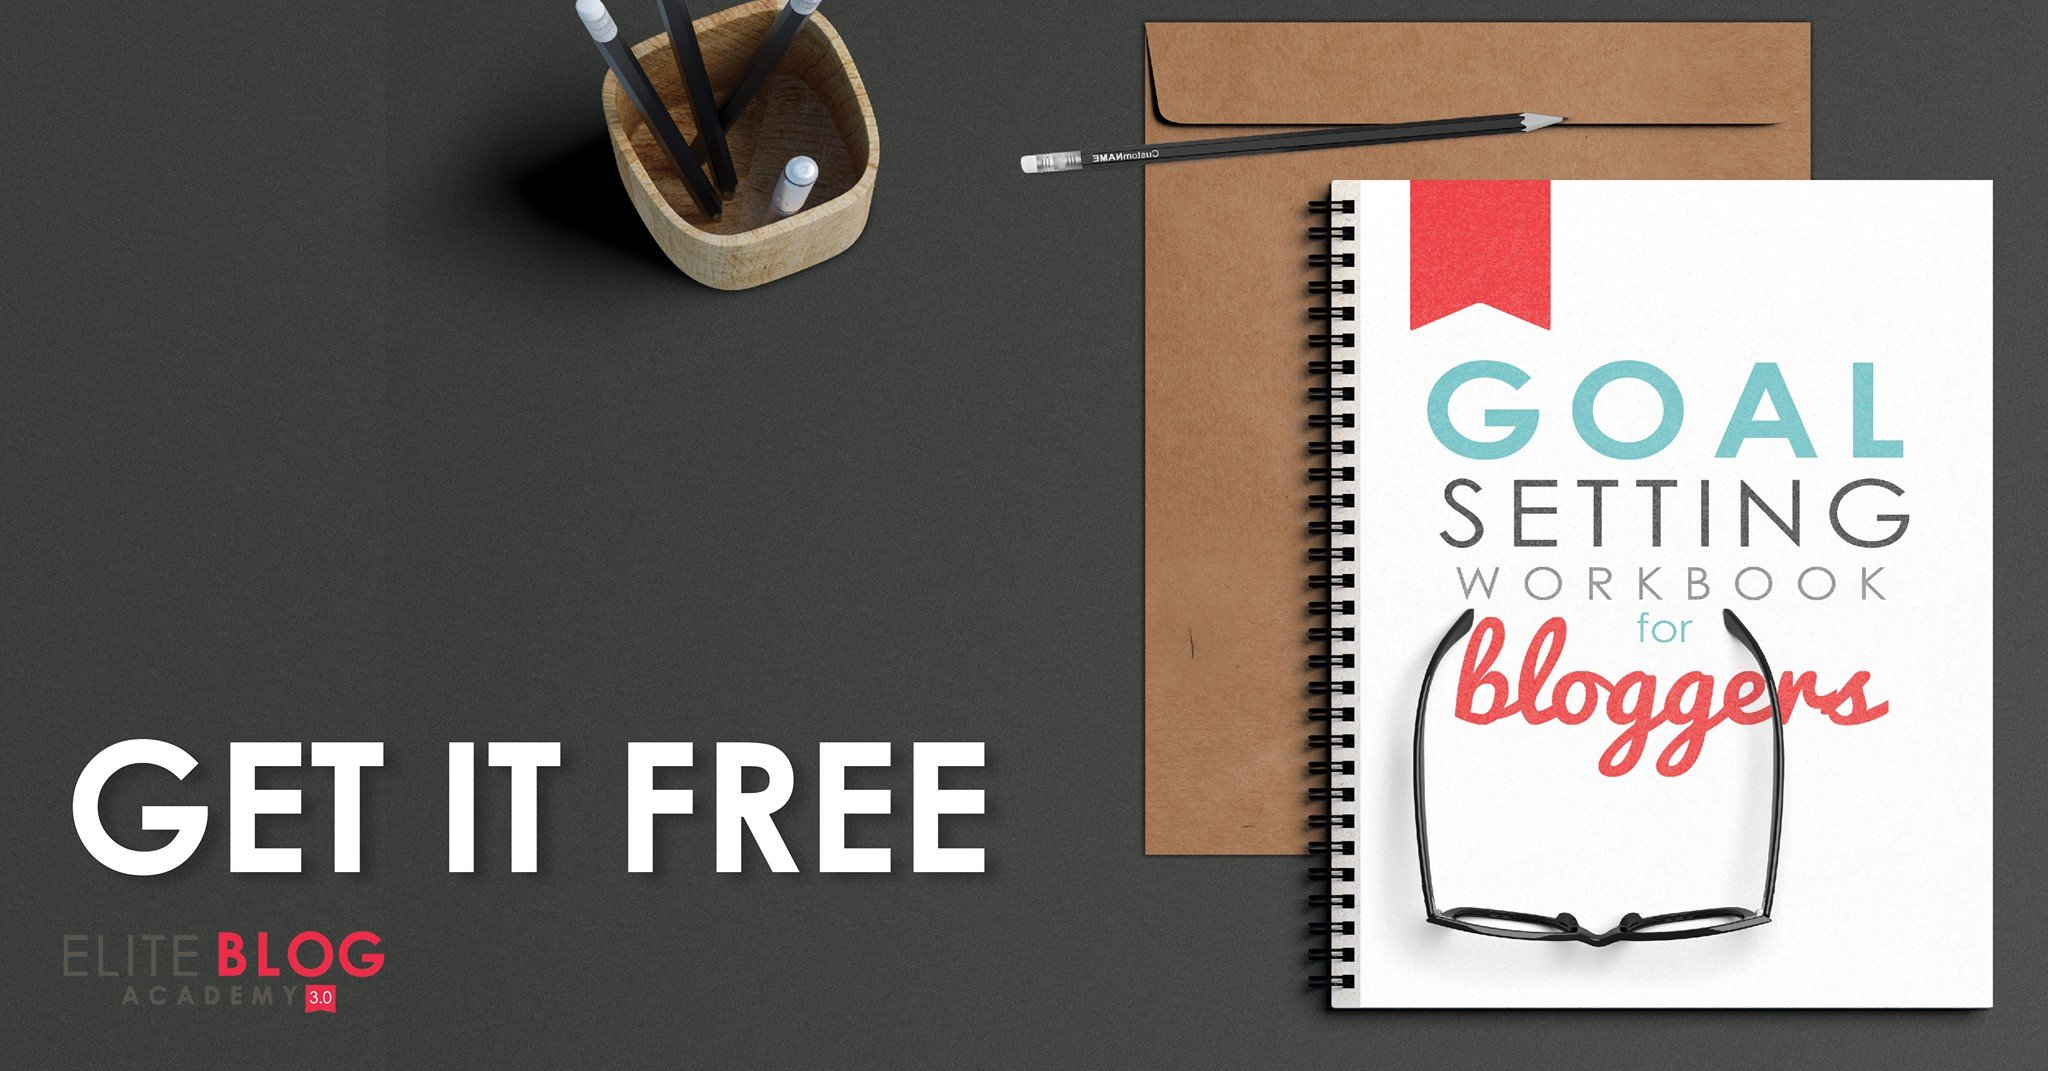 The Goal-setting Workbook for Bloggers Goal Setting Workbook for Bloggers is the perfect tool to help you take back your time by allowing you to clarify your purpose and prioritize what's really important.